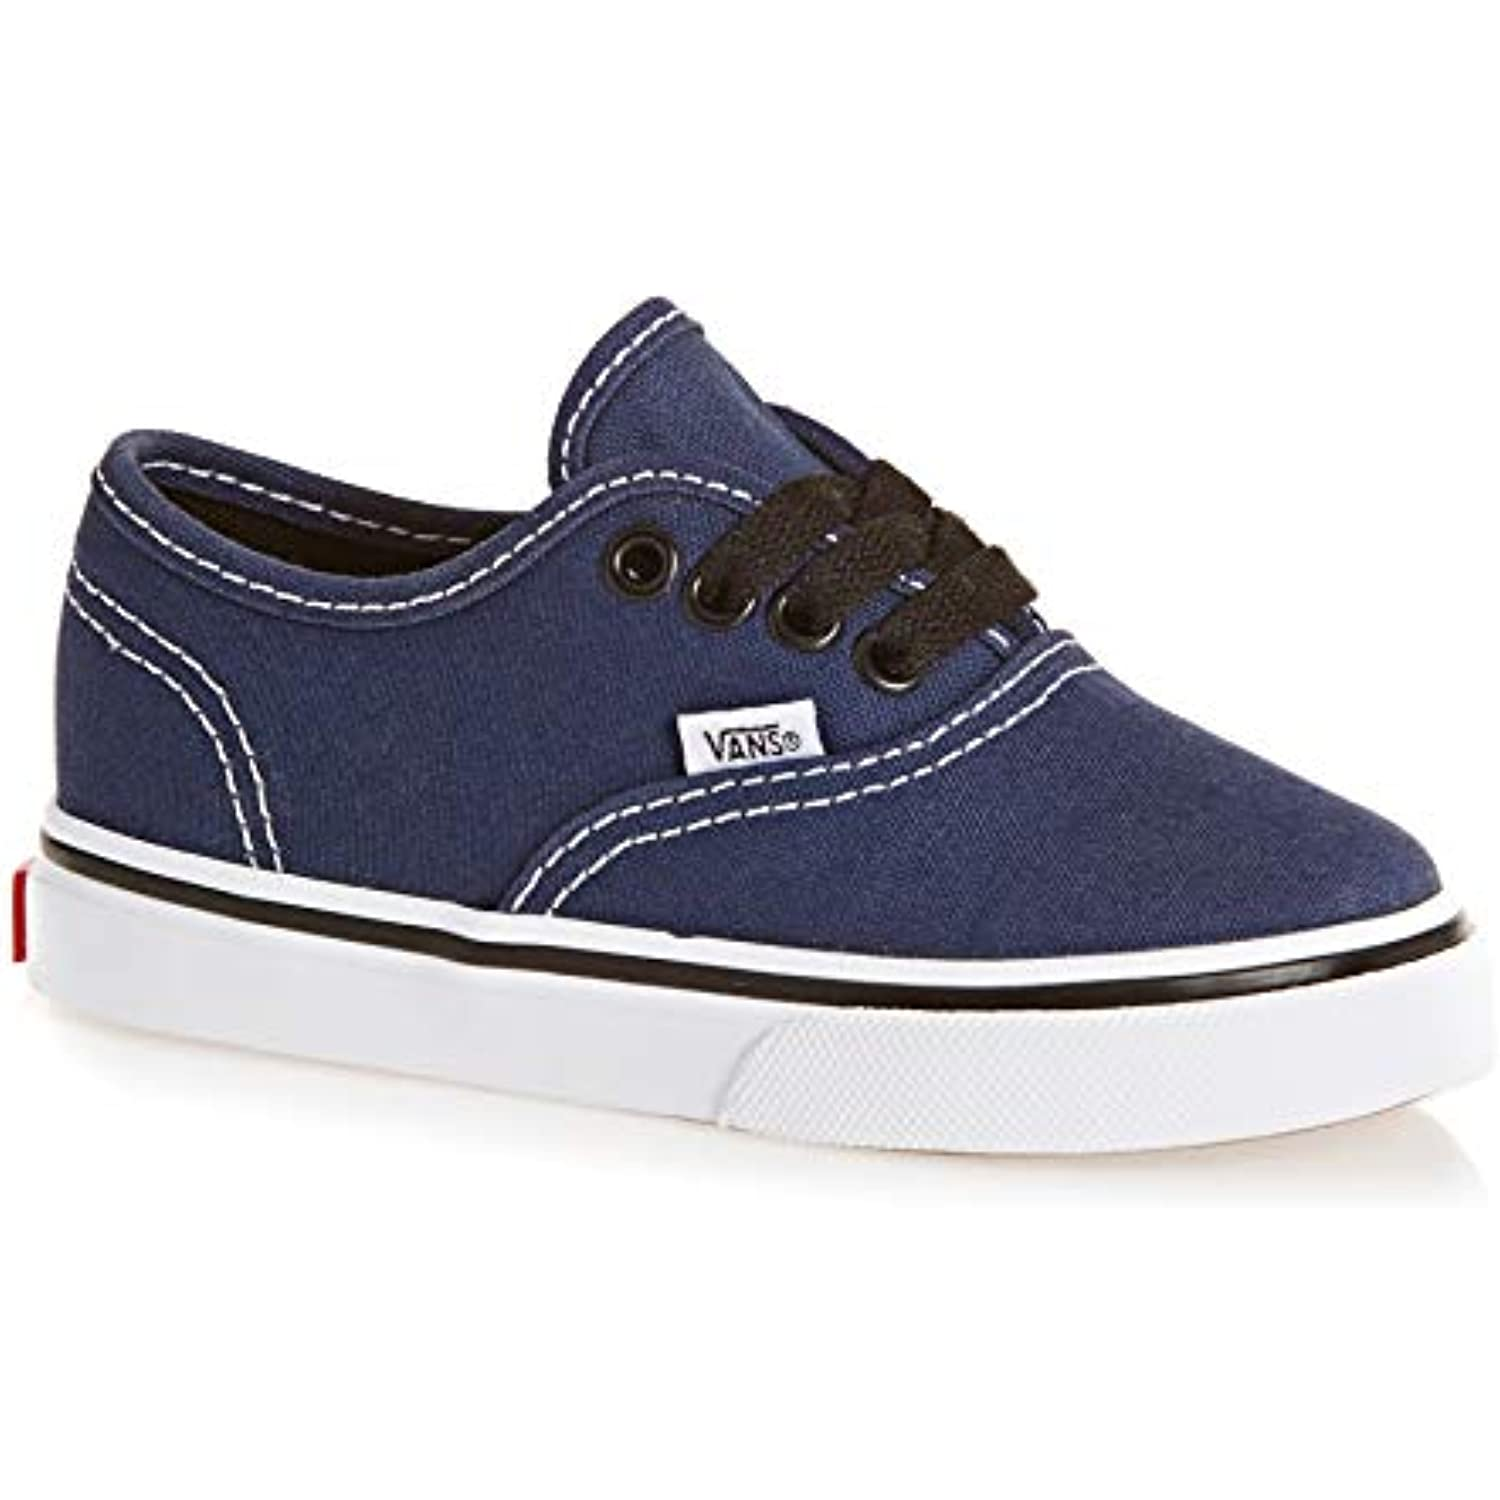 Vans Authentic Youth -Spring 2018- Medieval Blue/Black -